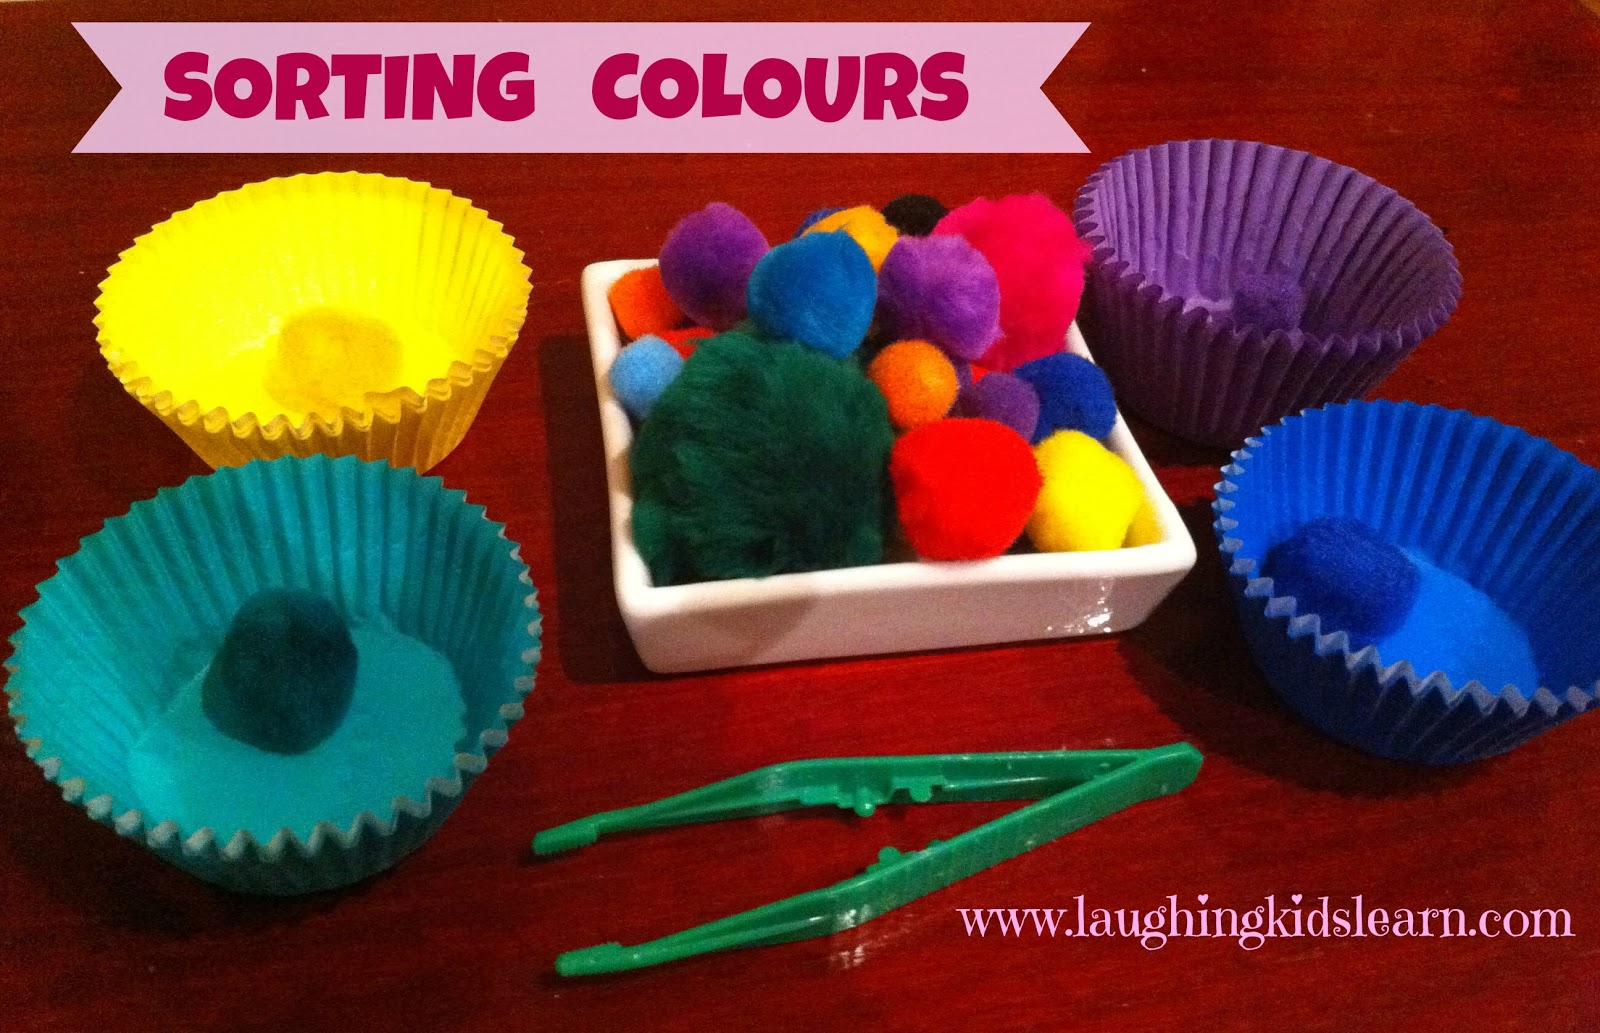 Sorting Colours Laughing Kids Learn